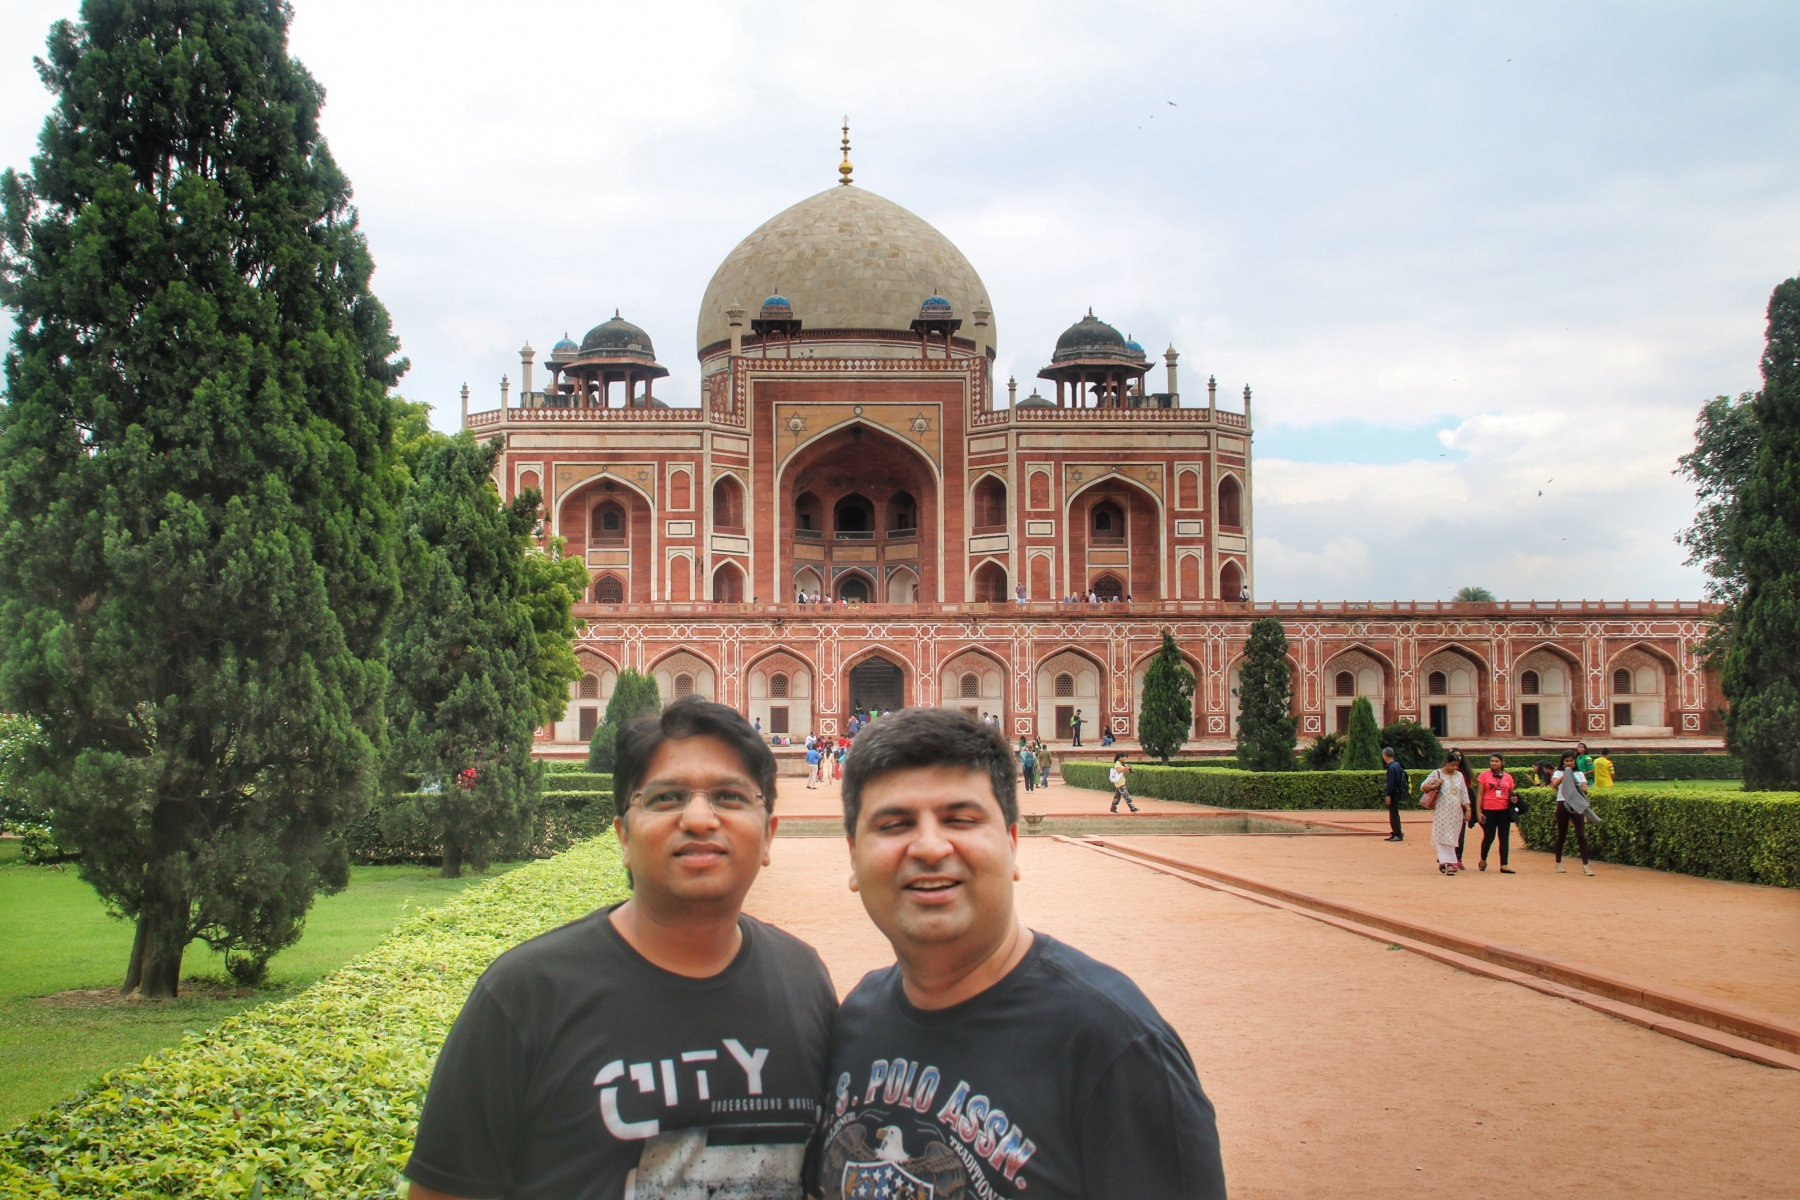 Atul and Salil at Humayun's tomb